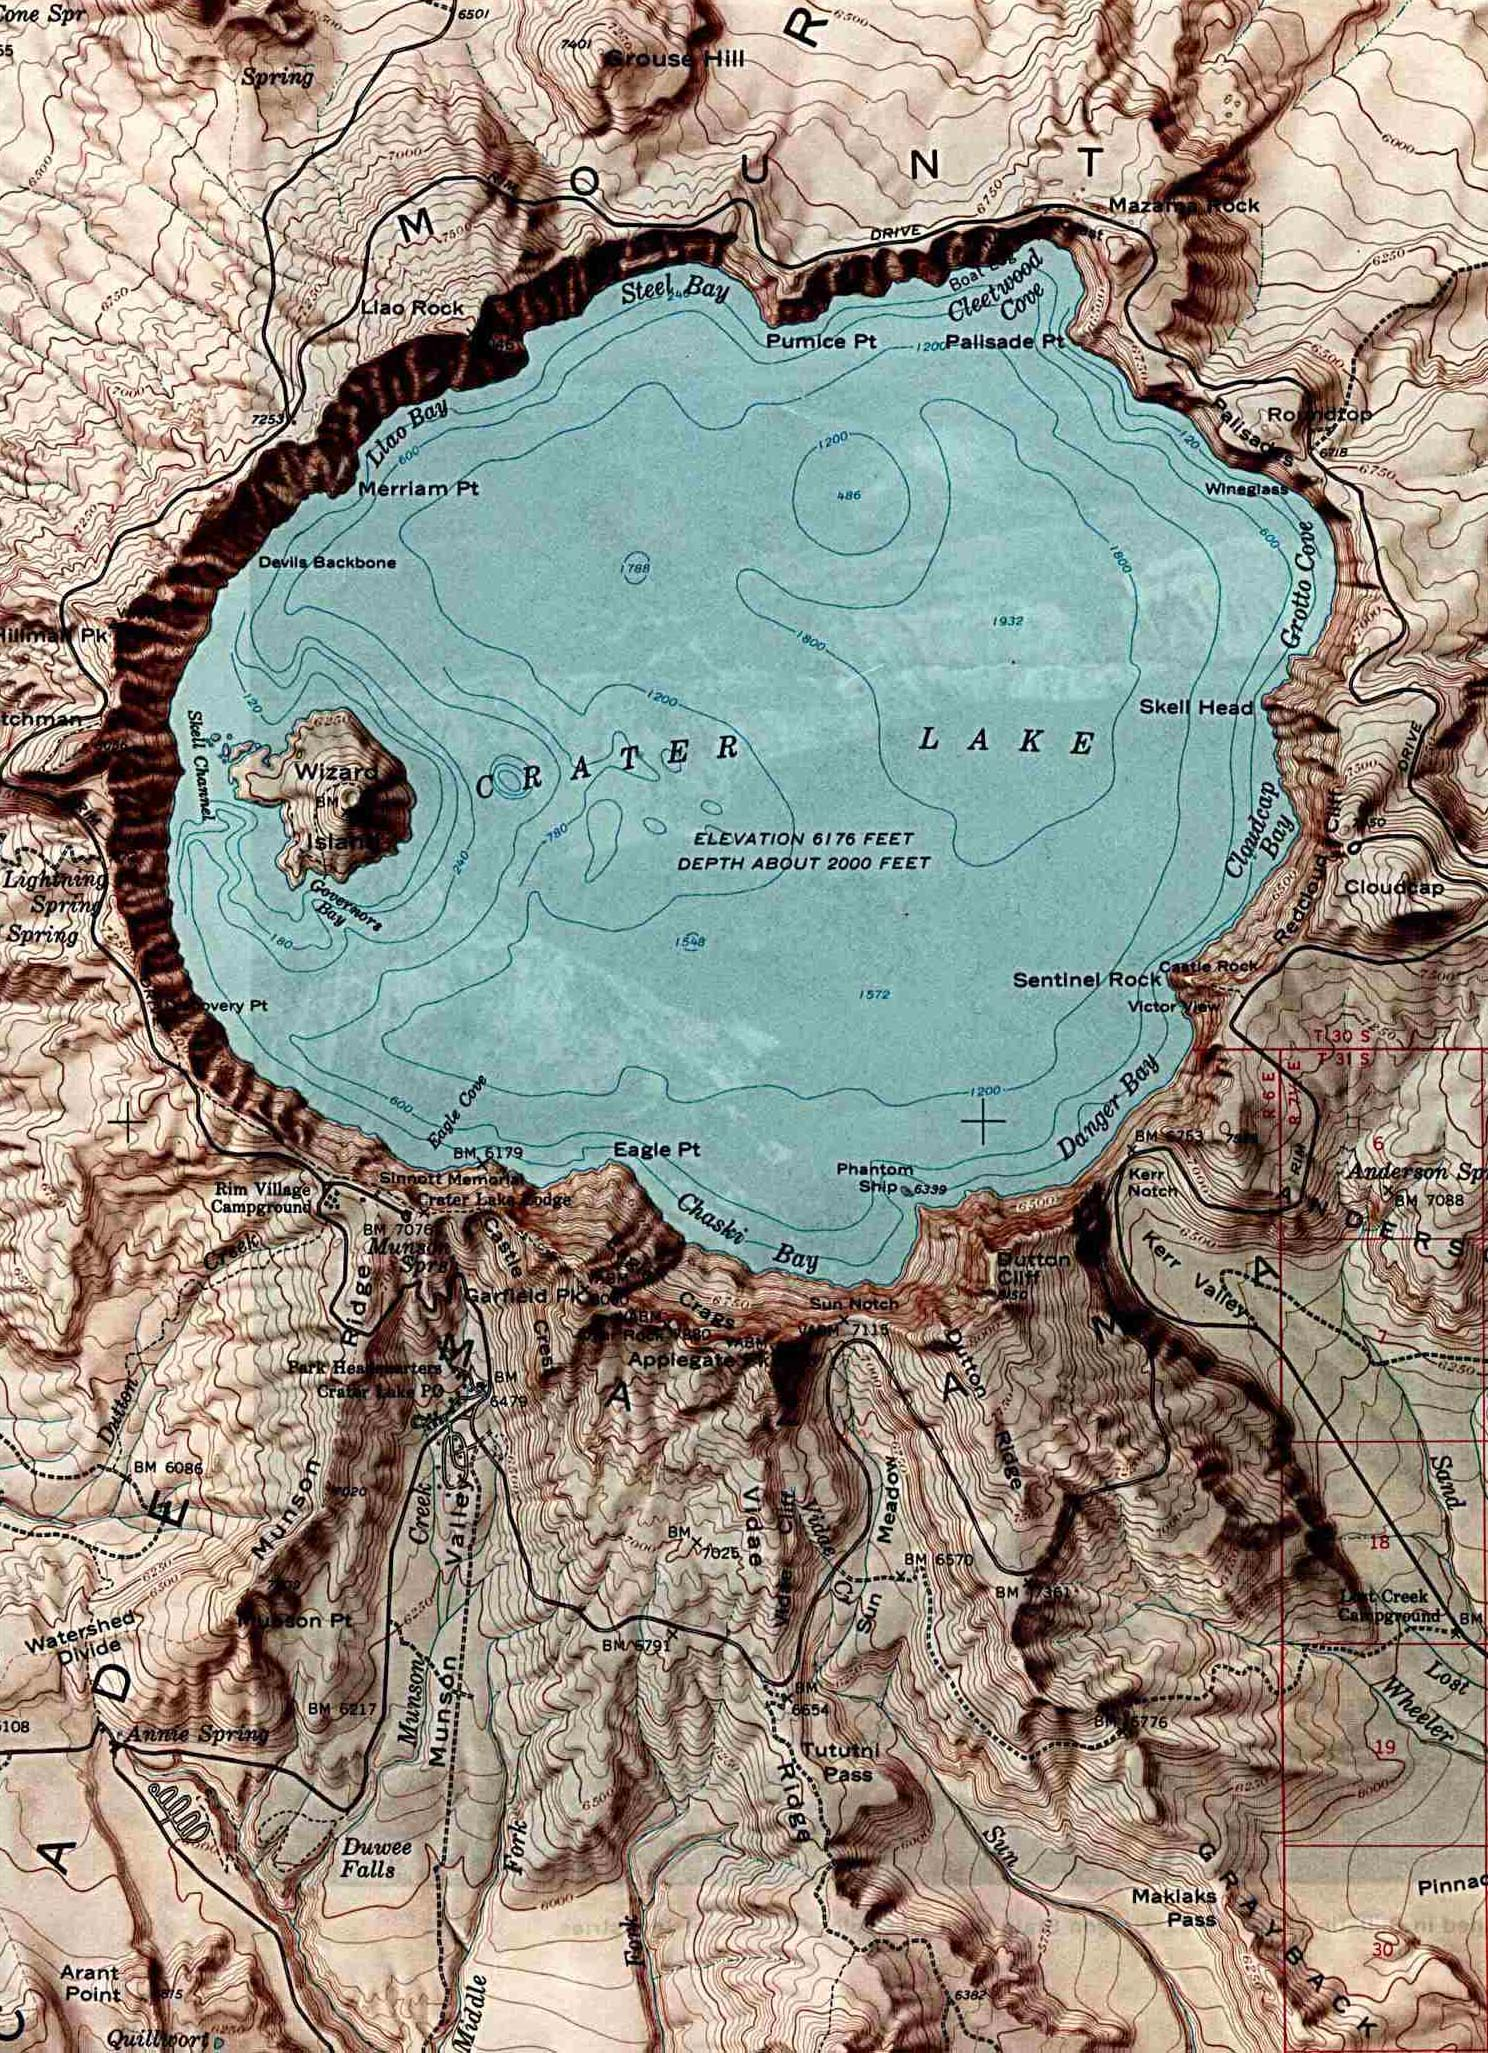 Maps Of United States National Parks And Monuments - Jamaica shaded relief map 1968